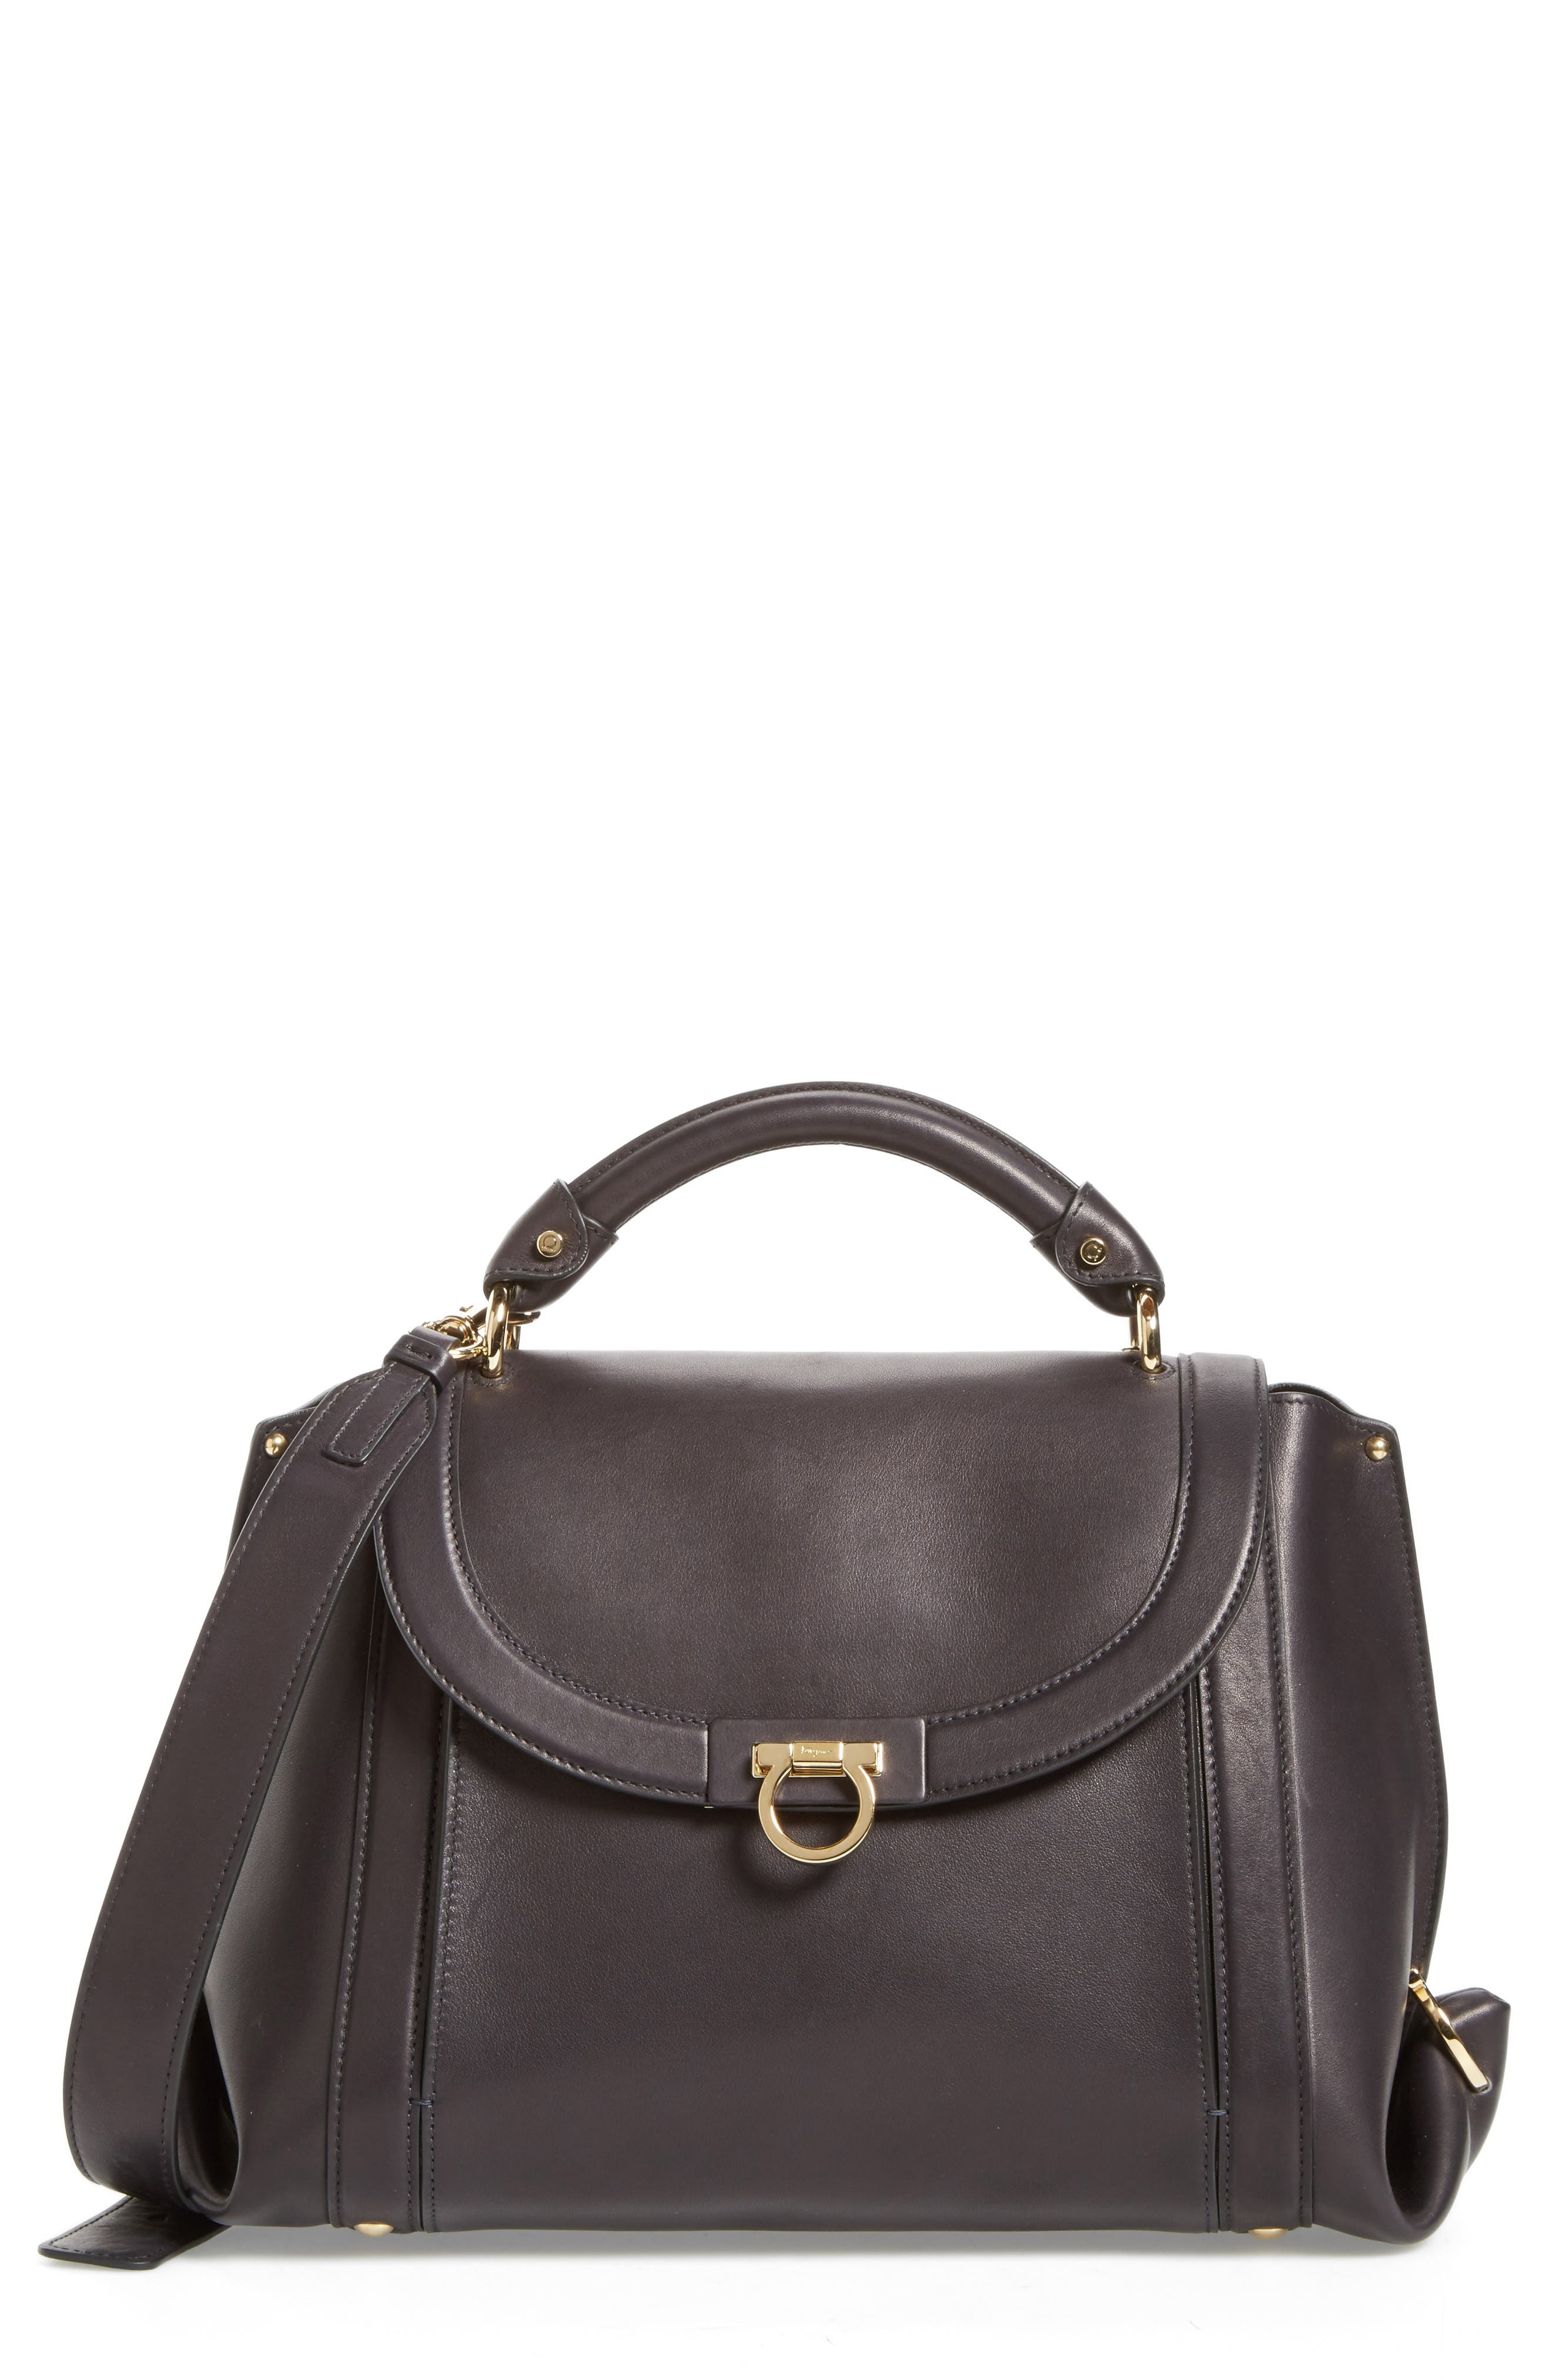 Medium Leather Satchel,                         Main,                         color, 001